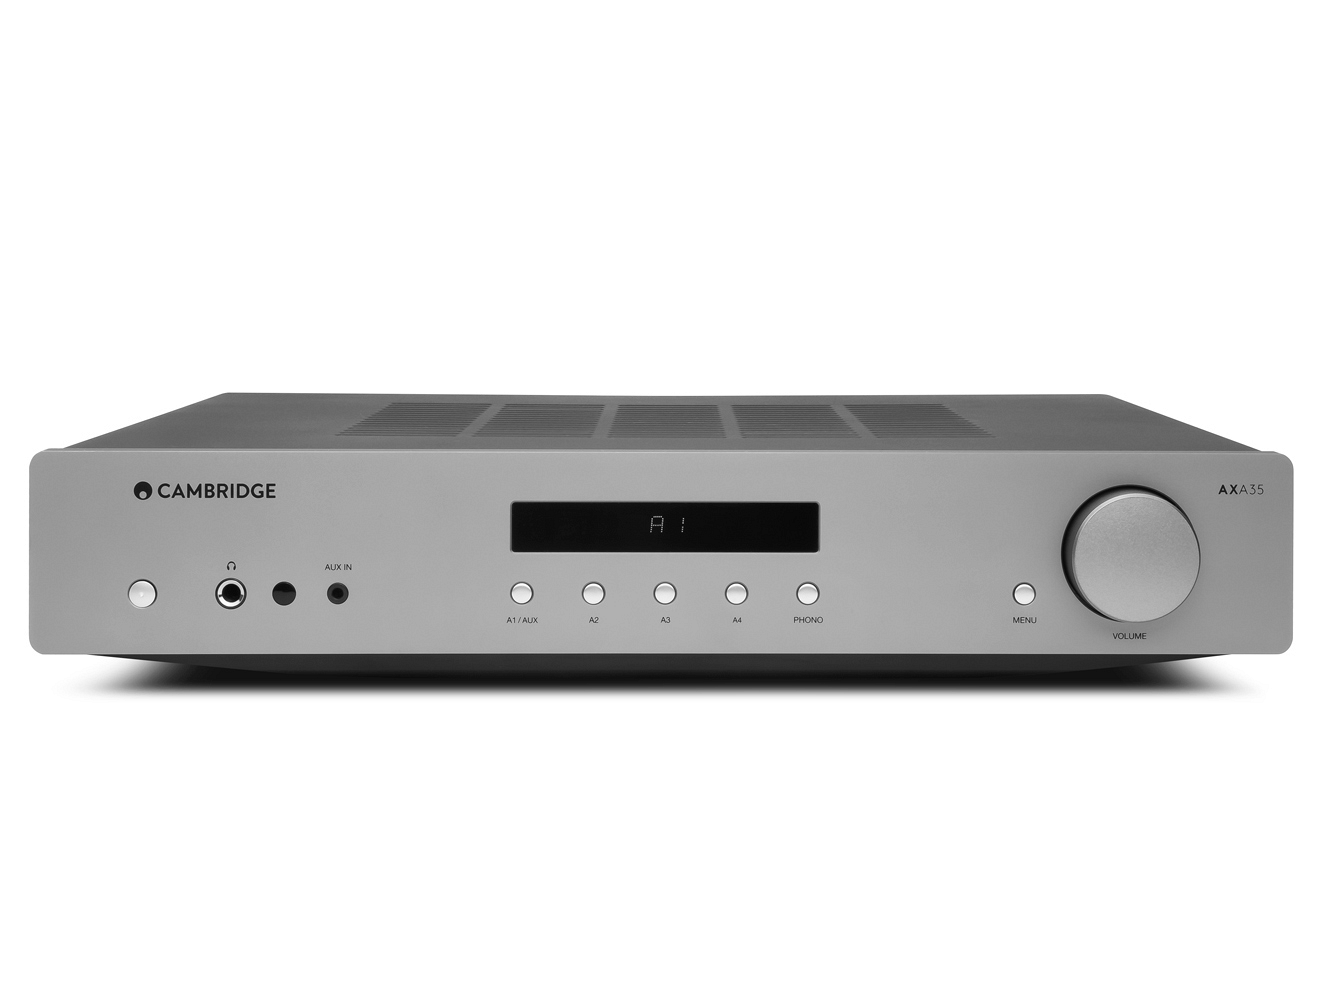 Cambridge Audio AXA 35 Versterker